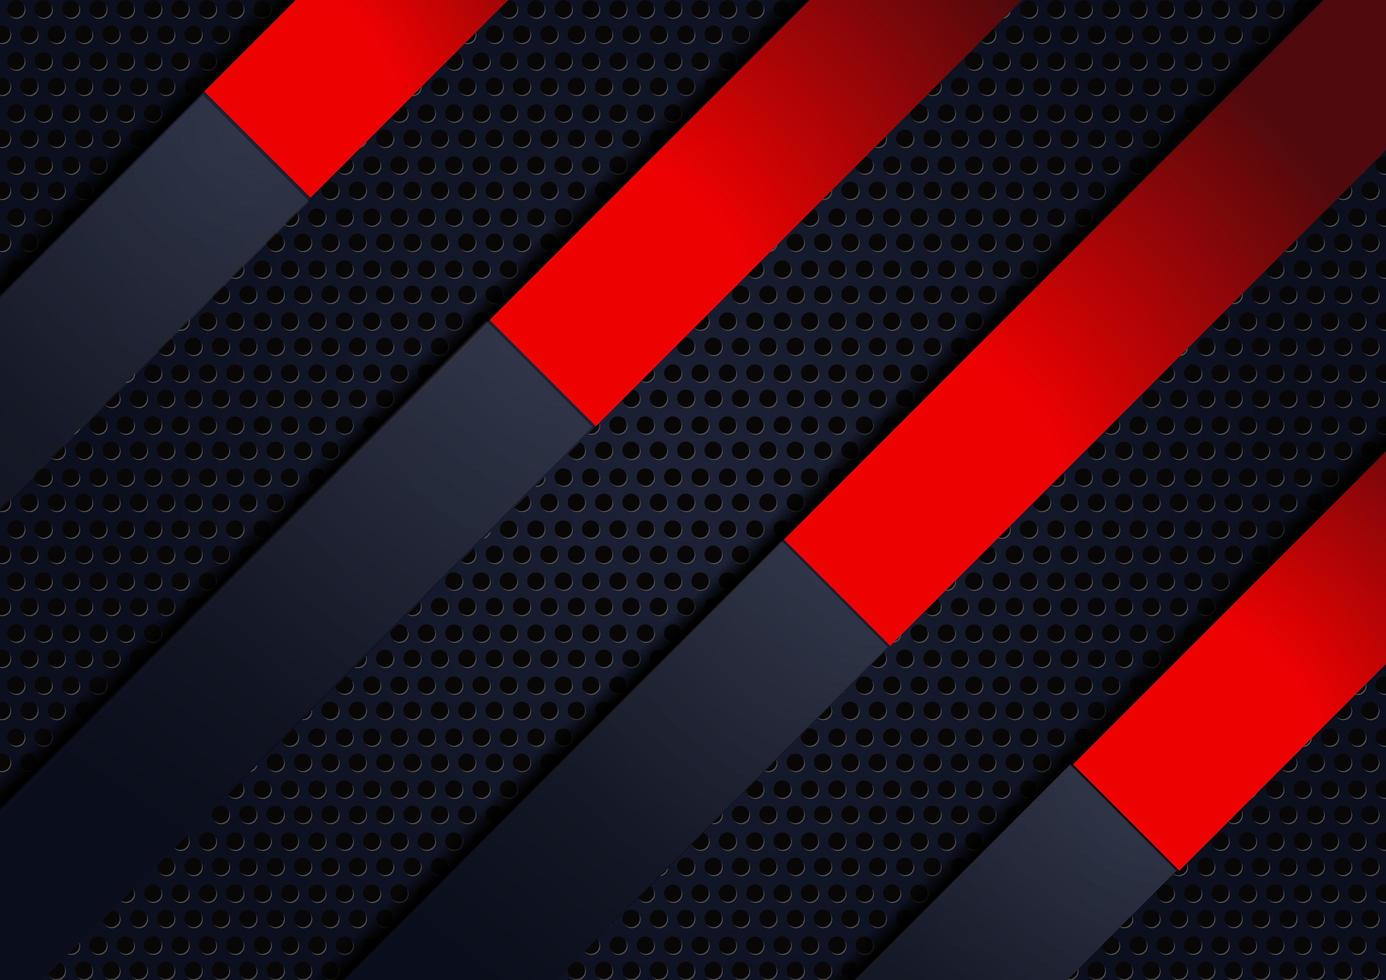 Abstract Navy, Red Diagonal Geometric on Metal Background vector